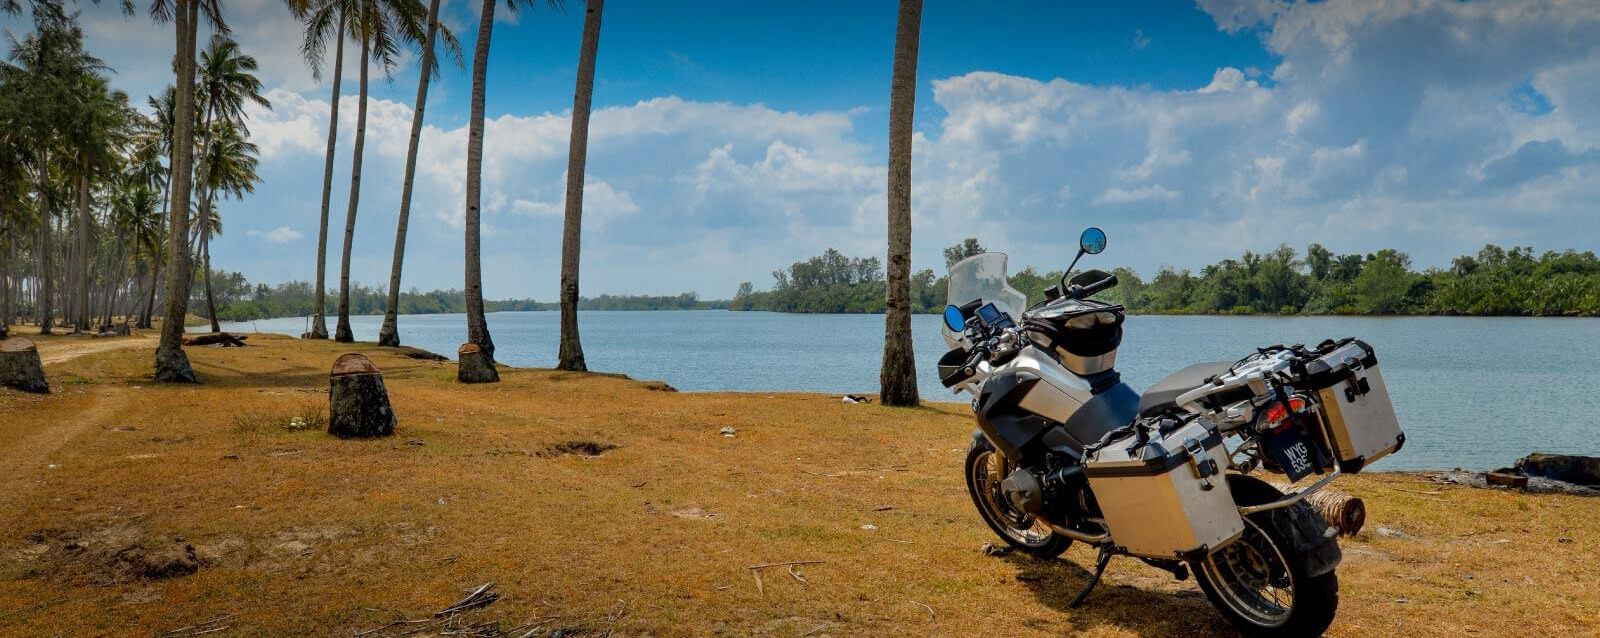 Motorcycle Tour KL Package